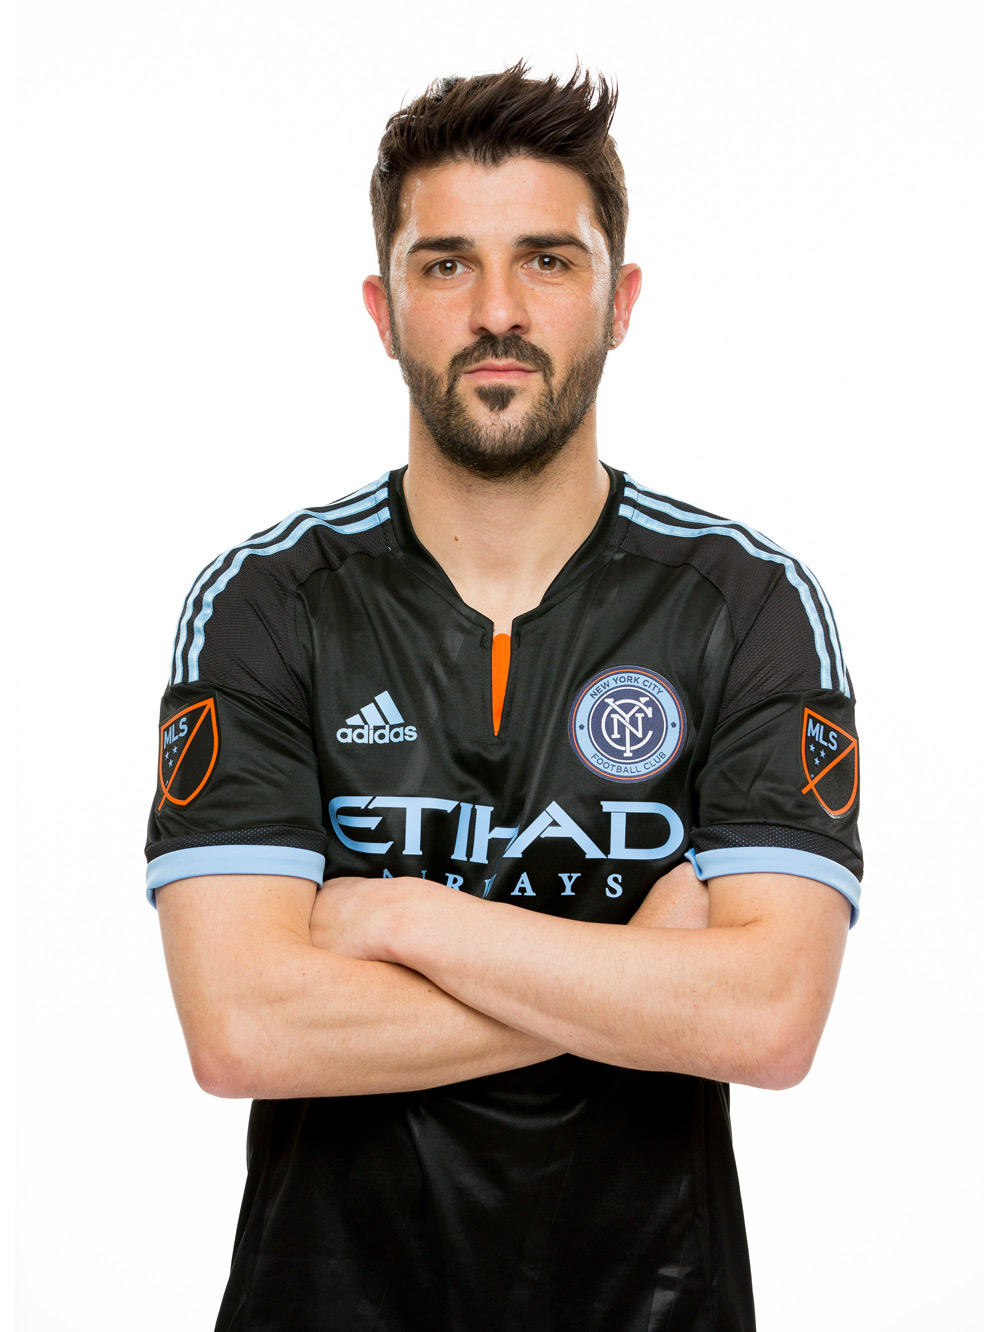 Soccer, Football, Design, Graphic Designer, Crest, Badge, Logo, Artist, Matthew Wolff Design, New York City FC, NYCFC, NYFC, NYC FC, David Villa, Frank Lampard, Andrea Pirlo, No Pirlo No Party, Yes Pirlo Yes Party, Poku, Yankee Stadium, Mix Diskerud, MLS, NY, Adidas, Third Rail, Streetwear, Apparel, Tshirt, Snapback, Hat, Cap, Branding, Kit, Identity, 2015